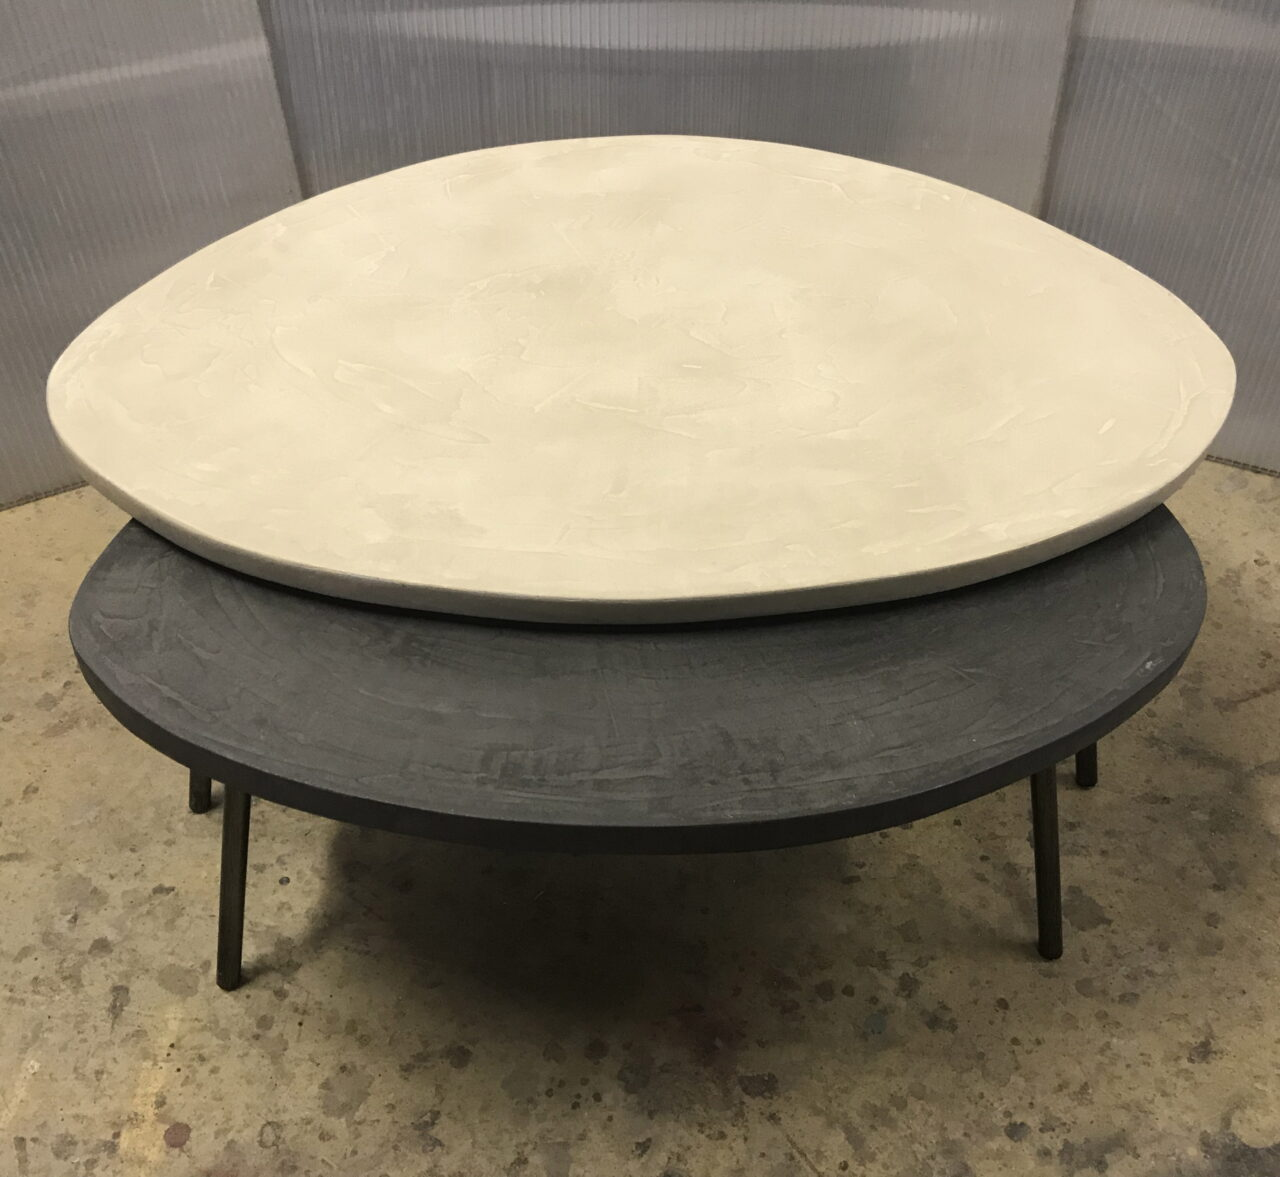 Mobilier Design Italien Table Basse Design Italien Affordable Meuble Design